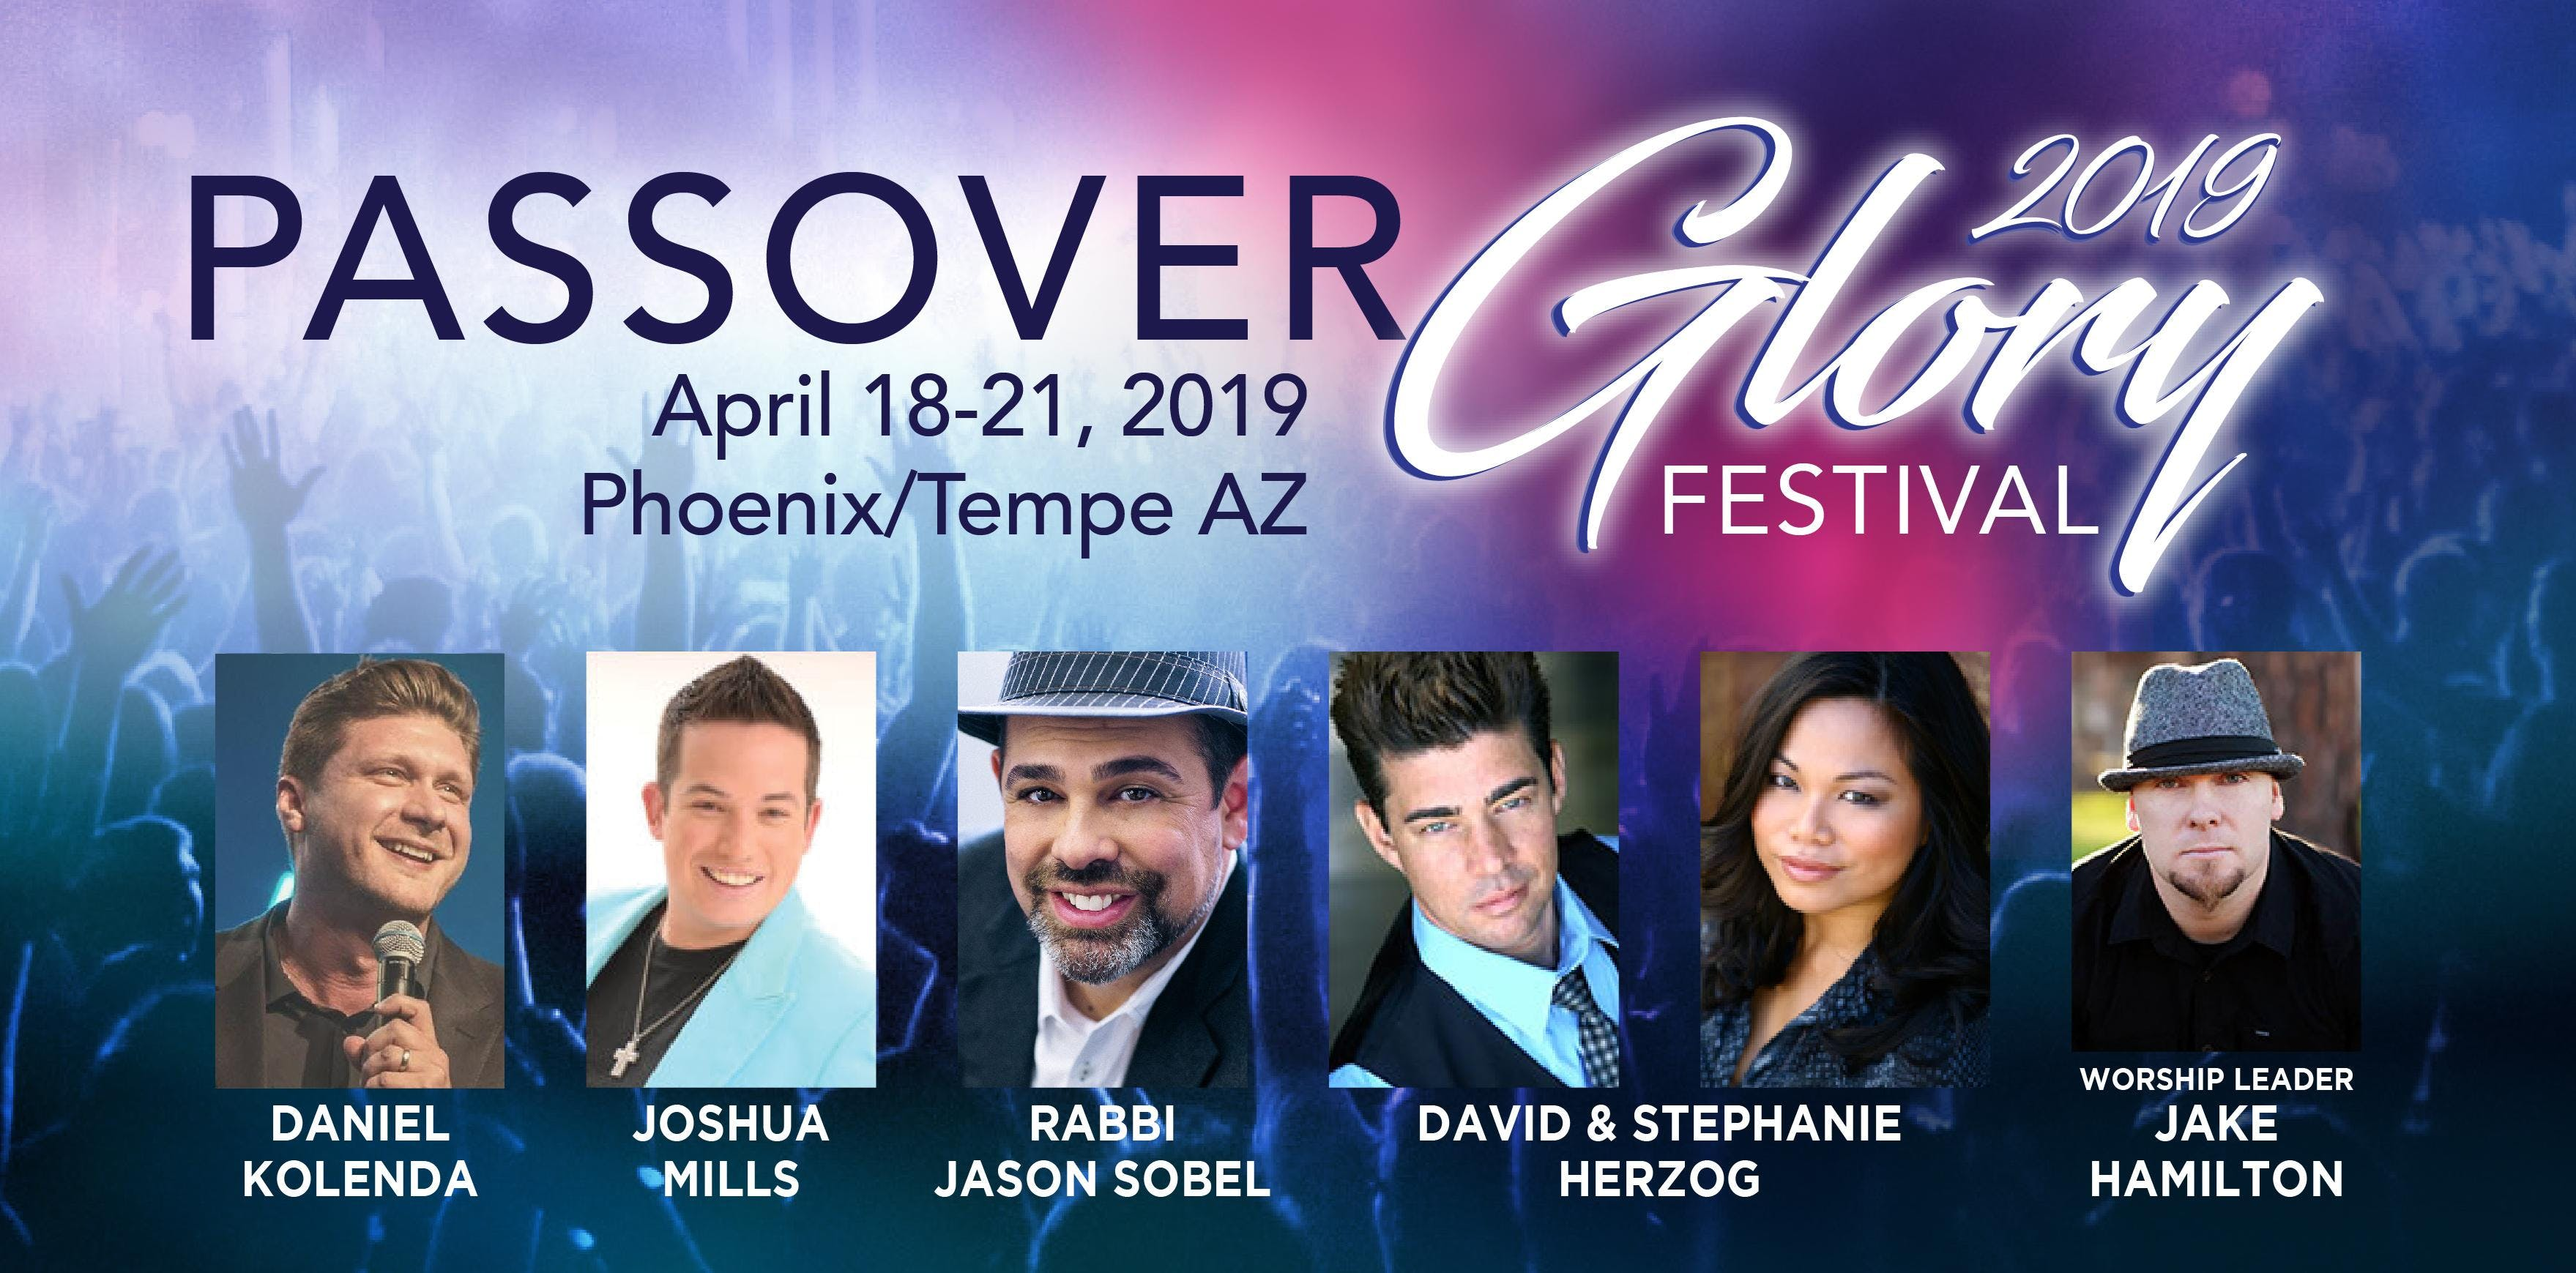 Passover Glory Conference 2019